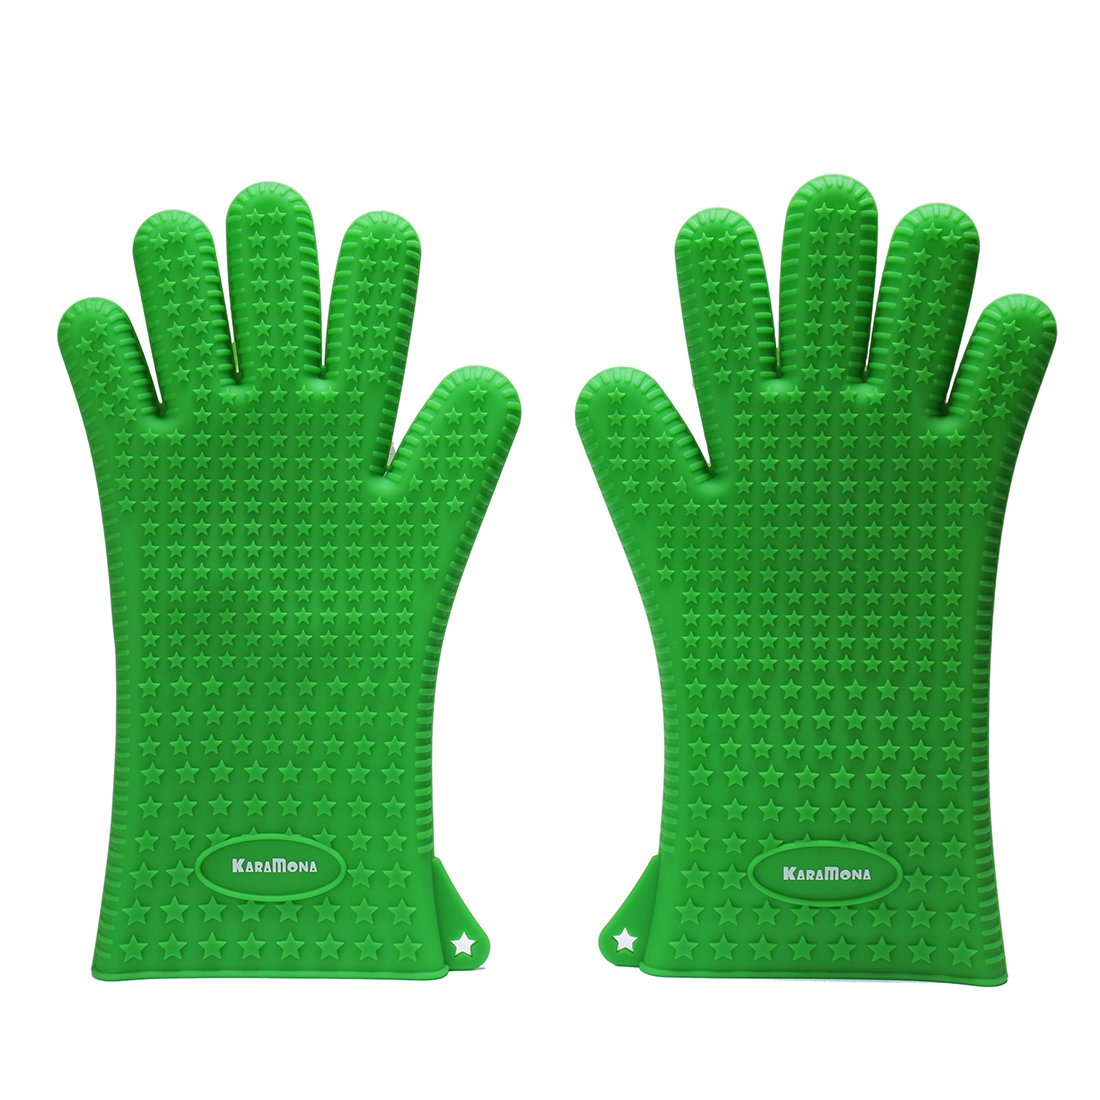 KaraMona Silicone Oven Mitts Green, Silicone Gloves with Fingers, Oven Mitts Heat Resistant, FDA Approved & BPA Free